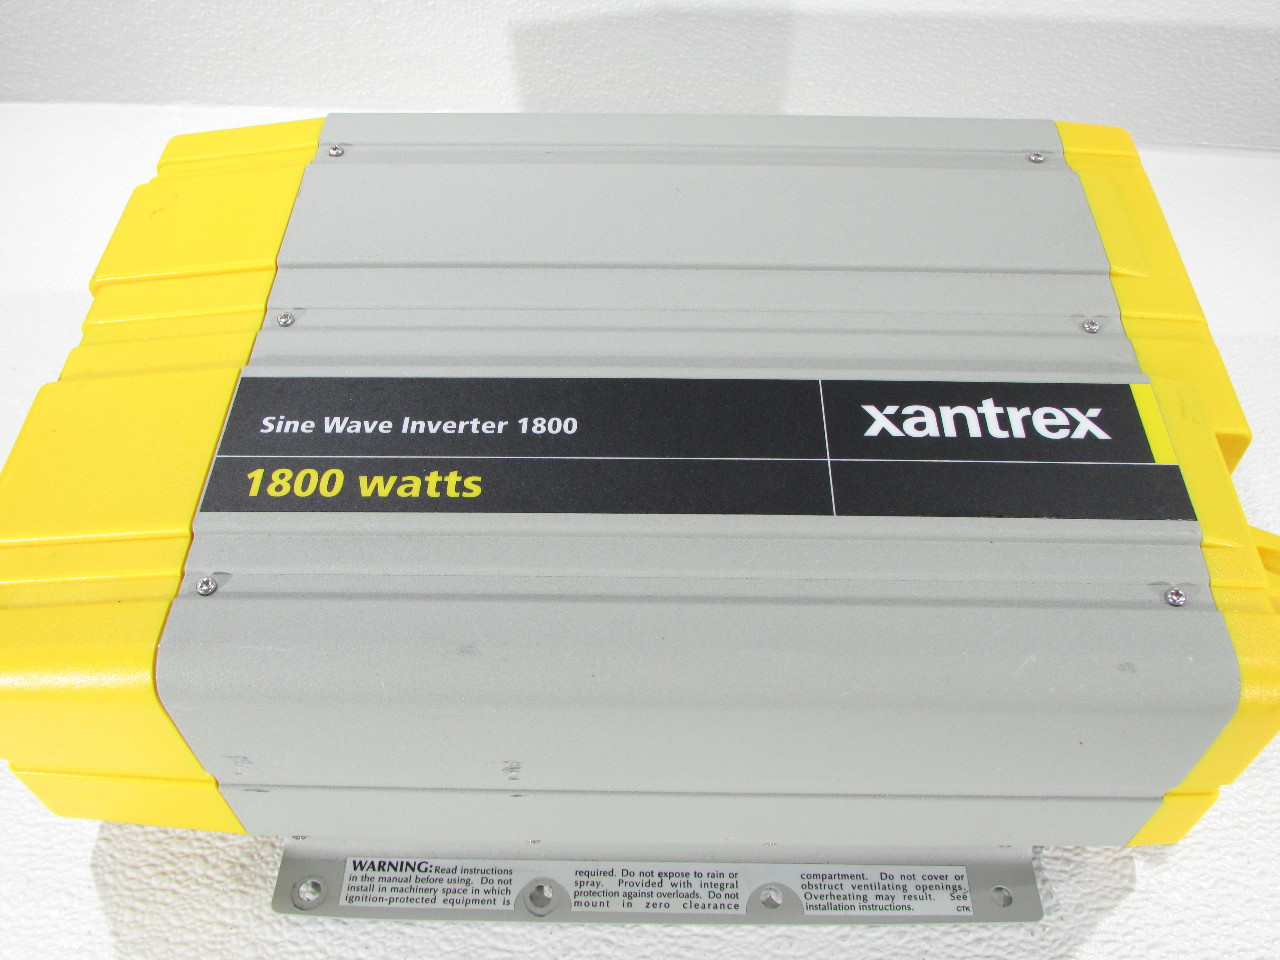 XANTREX 1800 SINE WAVE INVERTER P/N 806-1850